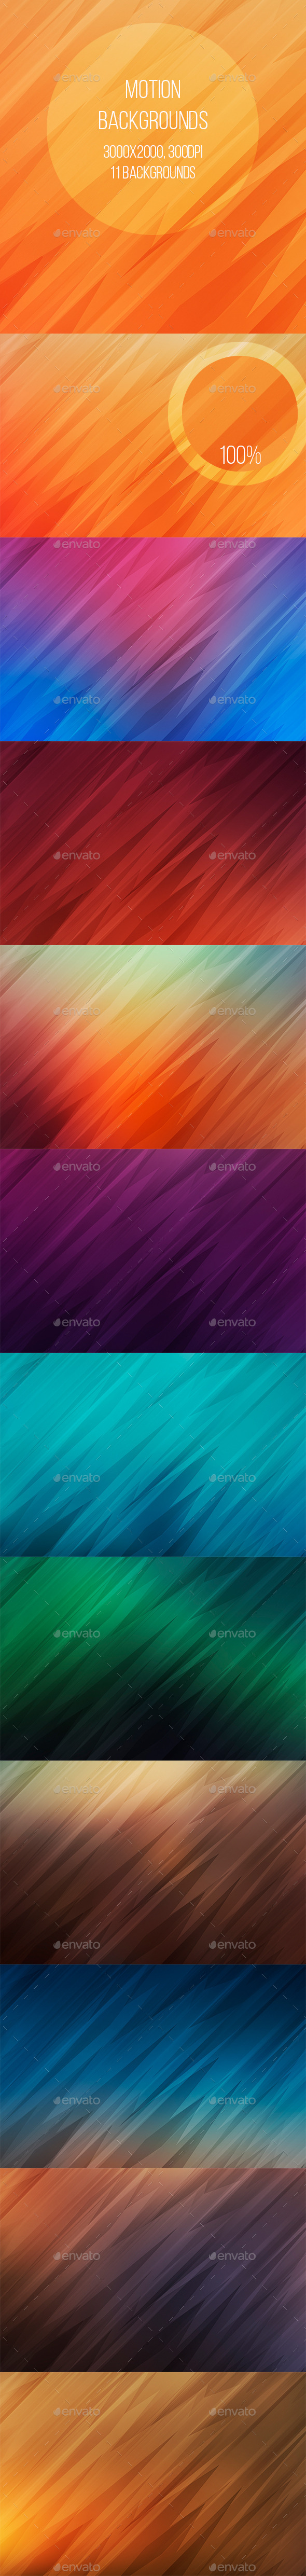 Motion Backgrounds - Abstract Backgrounds